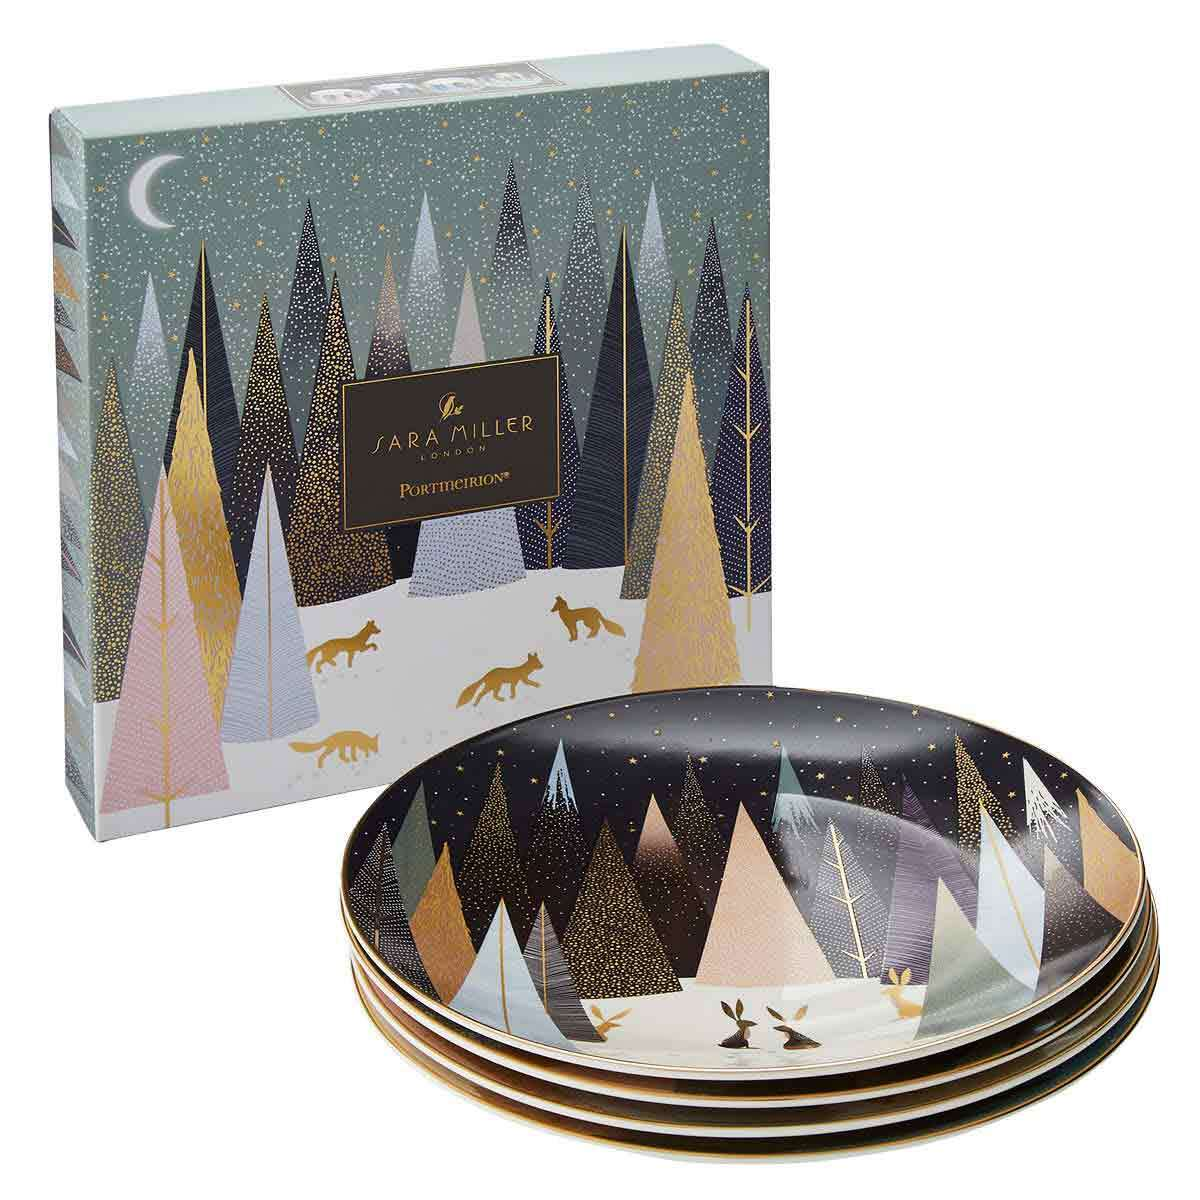 Sara Miller London for Portmeirion Frosted Pines Dessert Plates Set of 4 image number 1